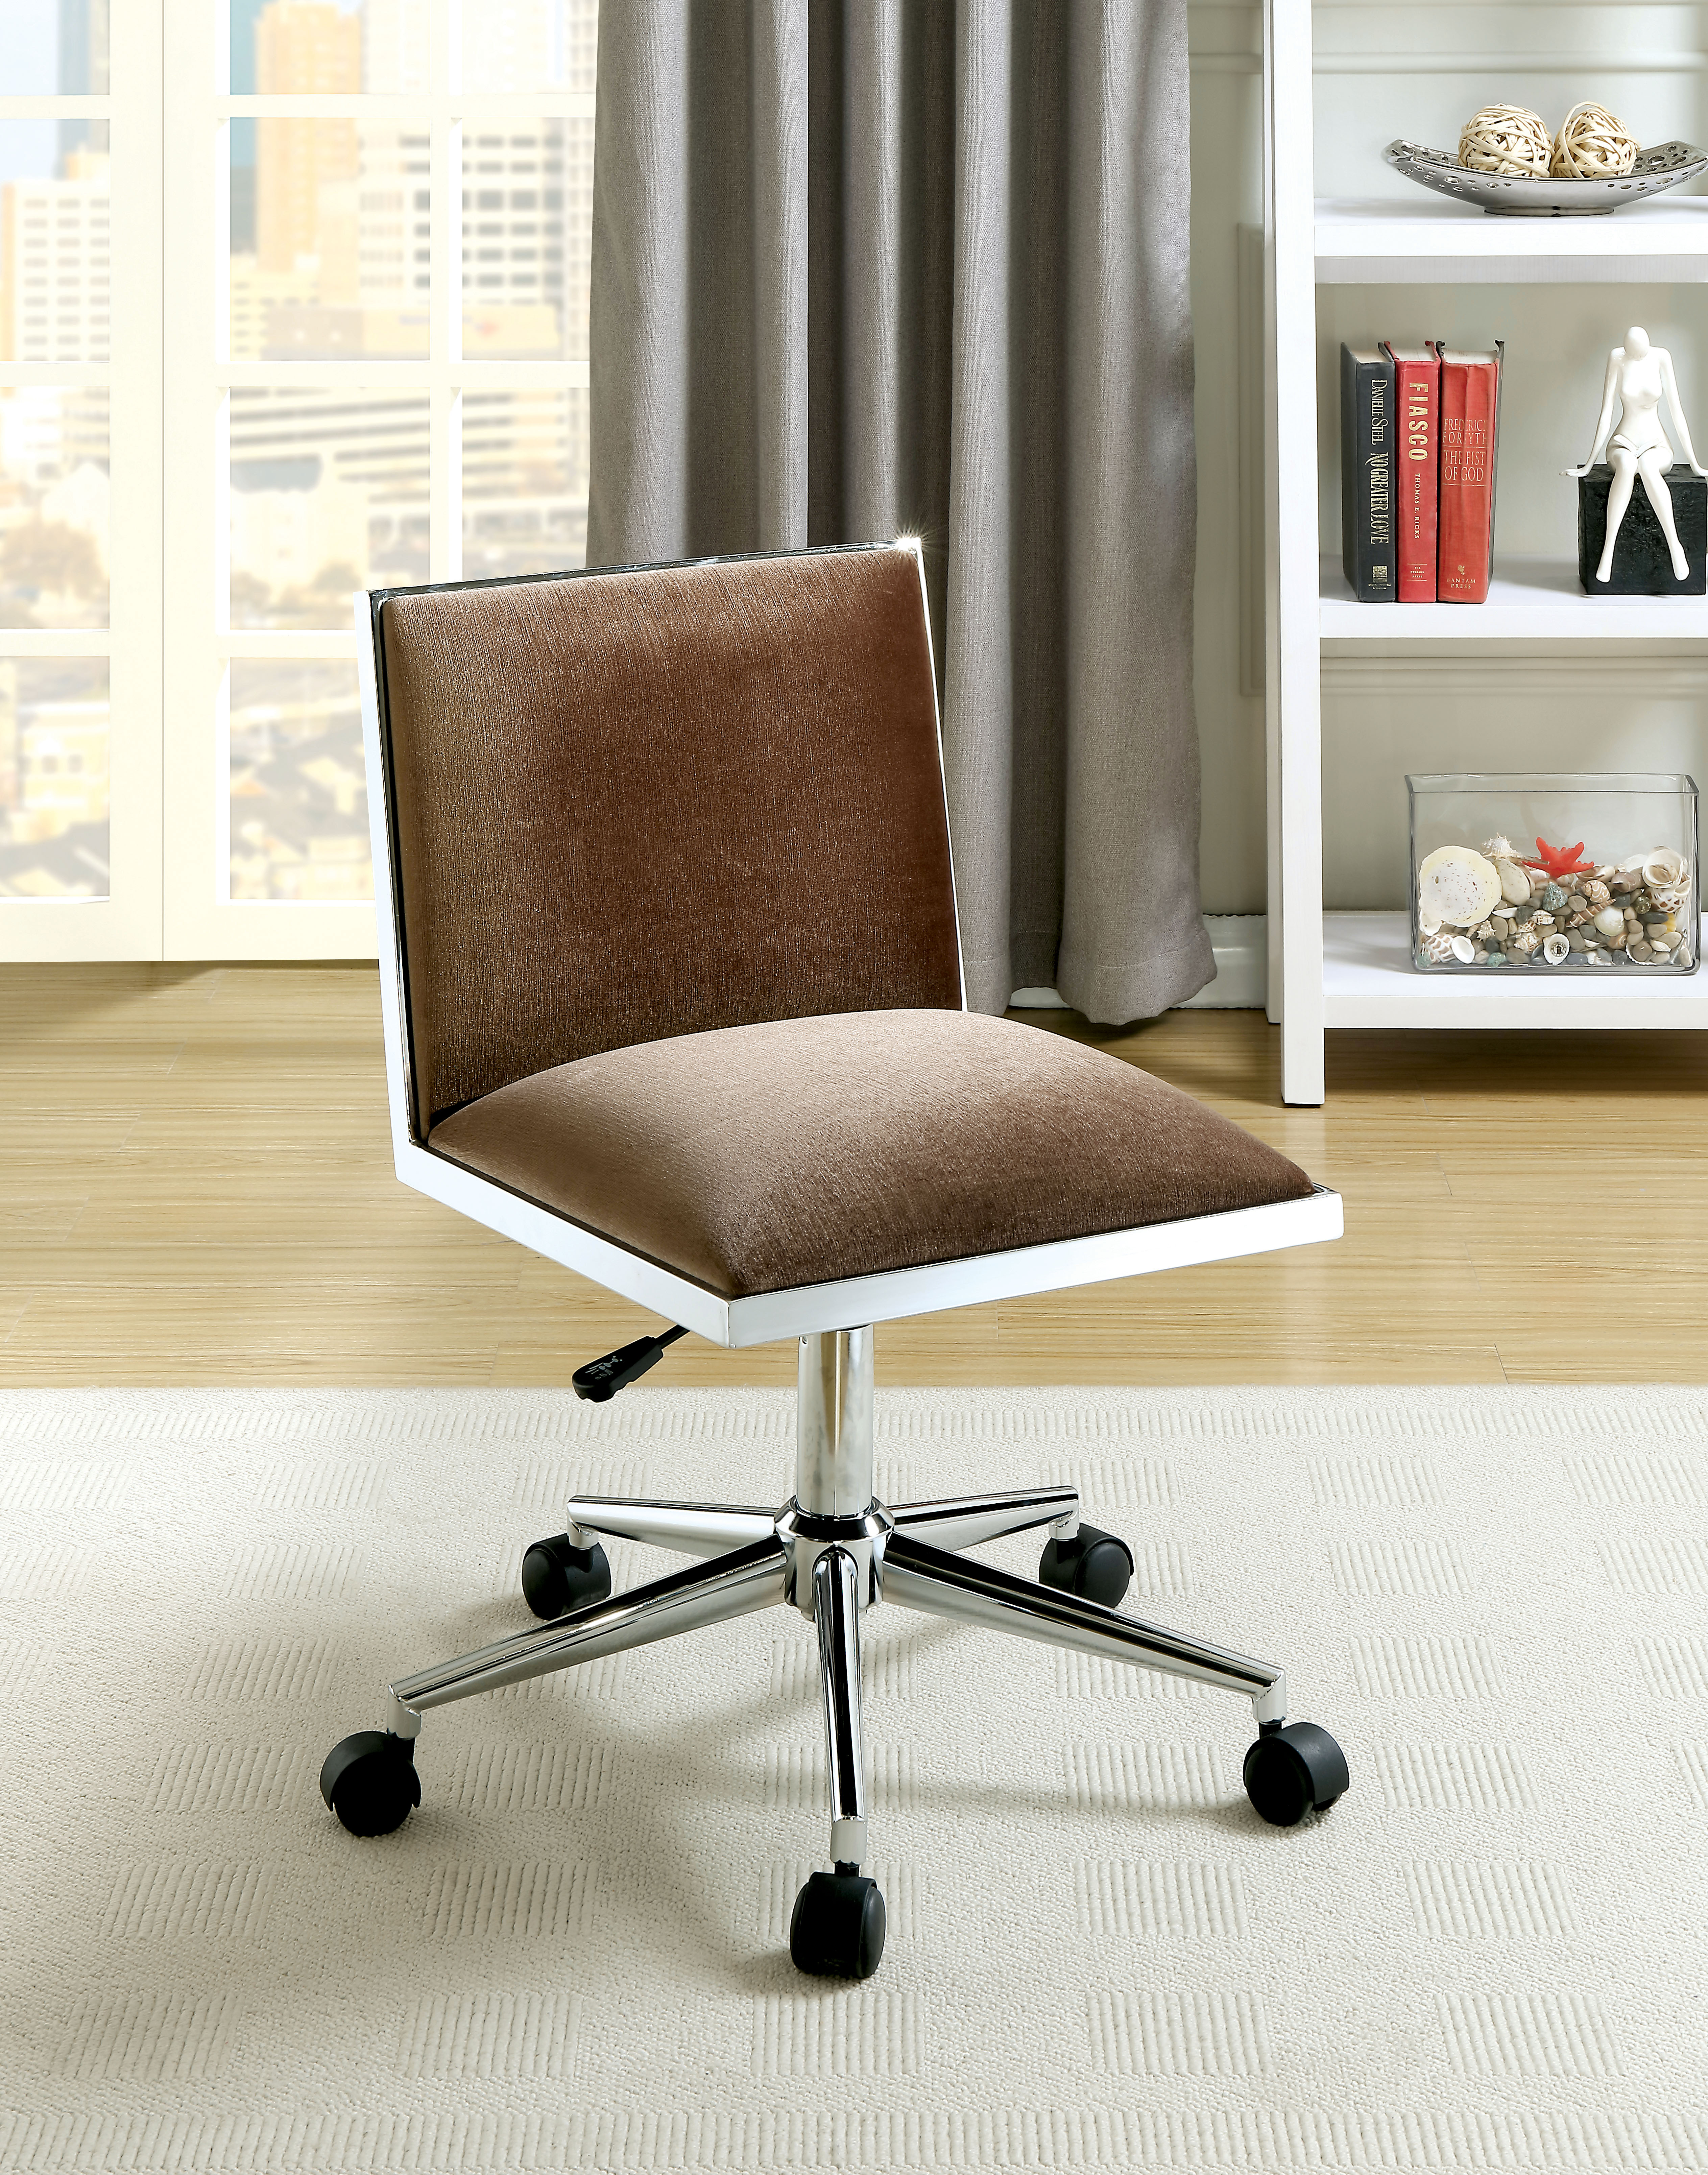 Furniture of America Delta Contemporary Brown Upholstered Office Chair -  Traveller Location